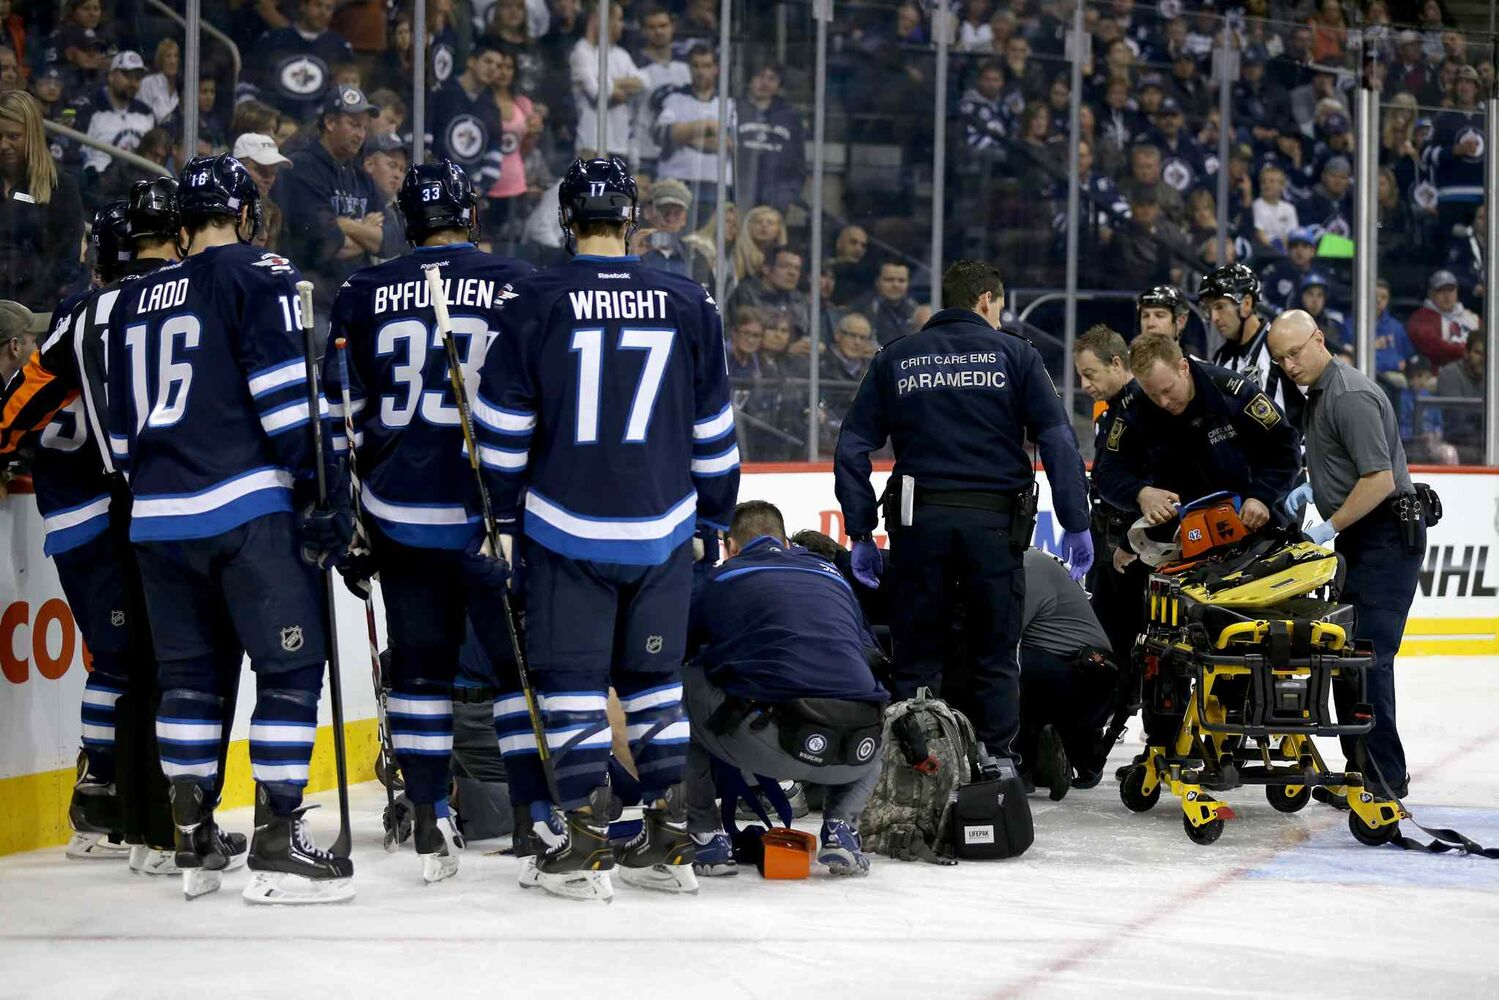 Winnipeg Jets defenceman Jacob Trouba lays on the ice as he is tended to by emergency personnel after going hard into the boards head first in the second period. (TREVOR HAGAN / WINNIPEG FREE PRESS)